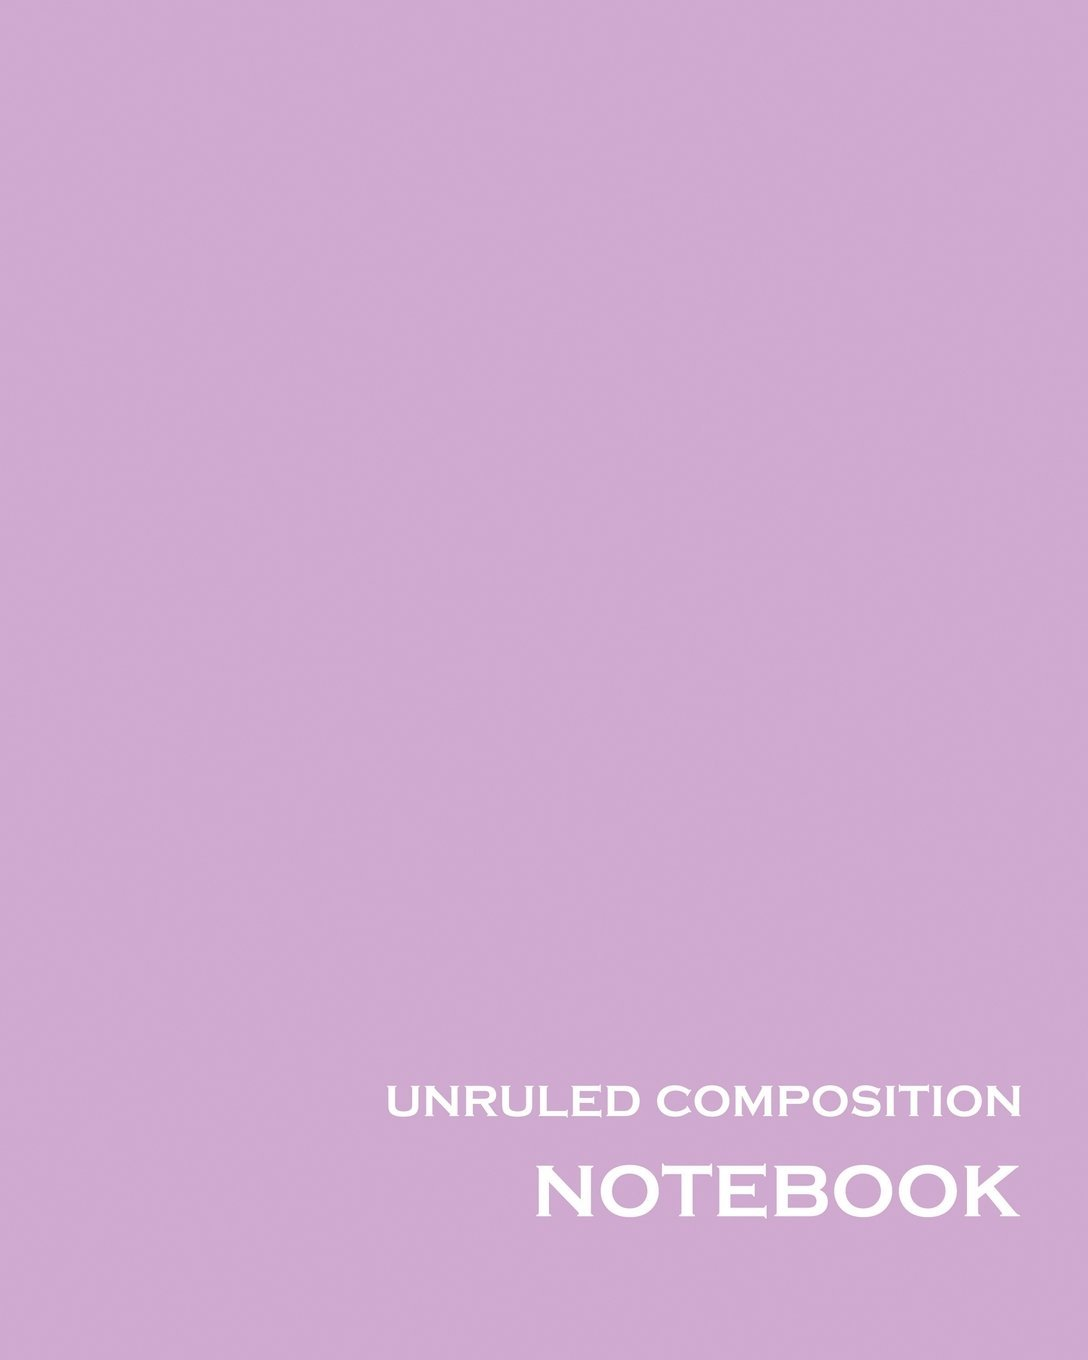 unruled composition notebook 100 unruled numbered pages 8 x 10 purple unlined notebook unruled composition book unruled journal unruled for drawing writing doodling sketching